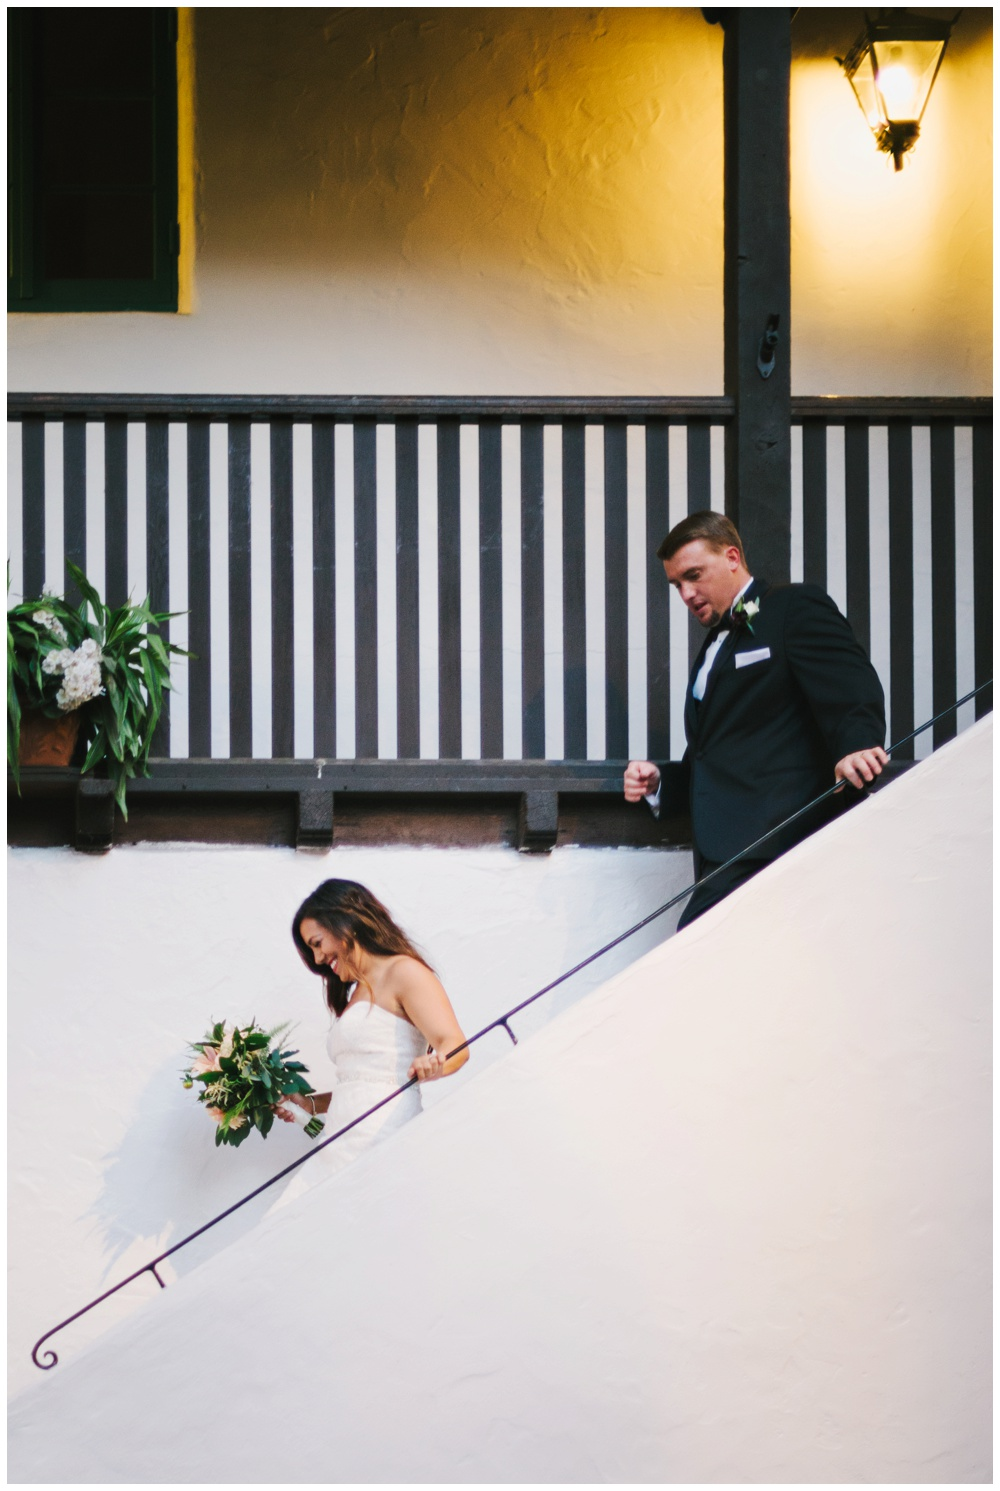 Mollie-Crutcher-Photography-Santa-Barbara-Wedding-Photographer_0154.jpg